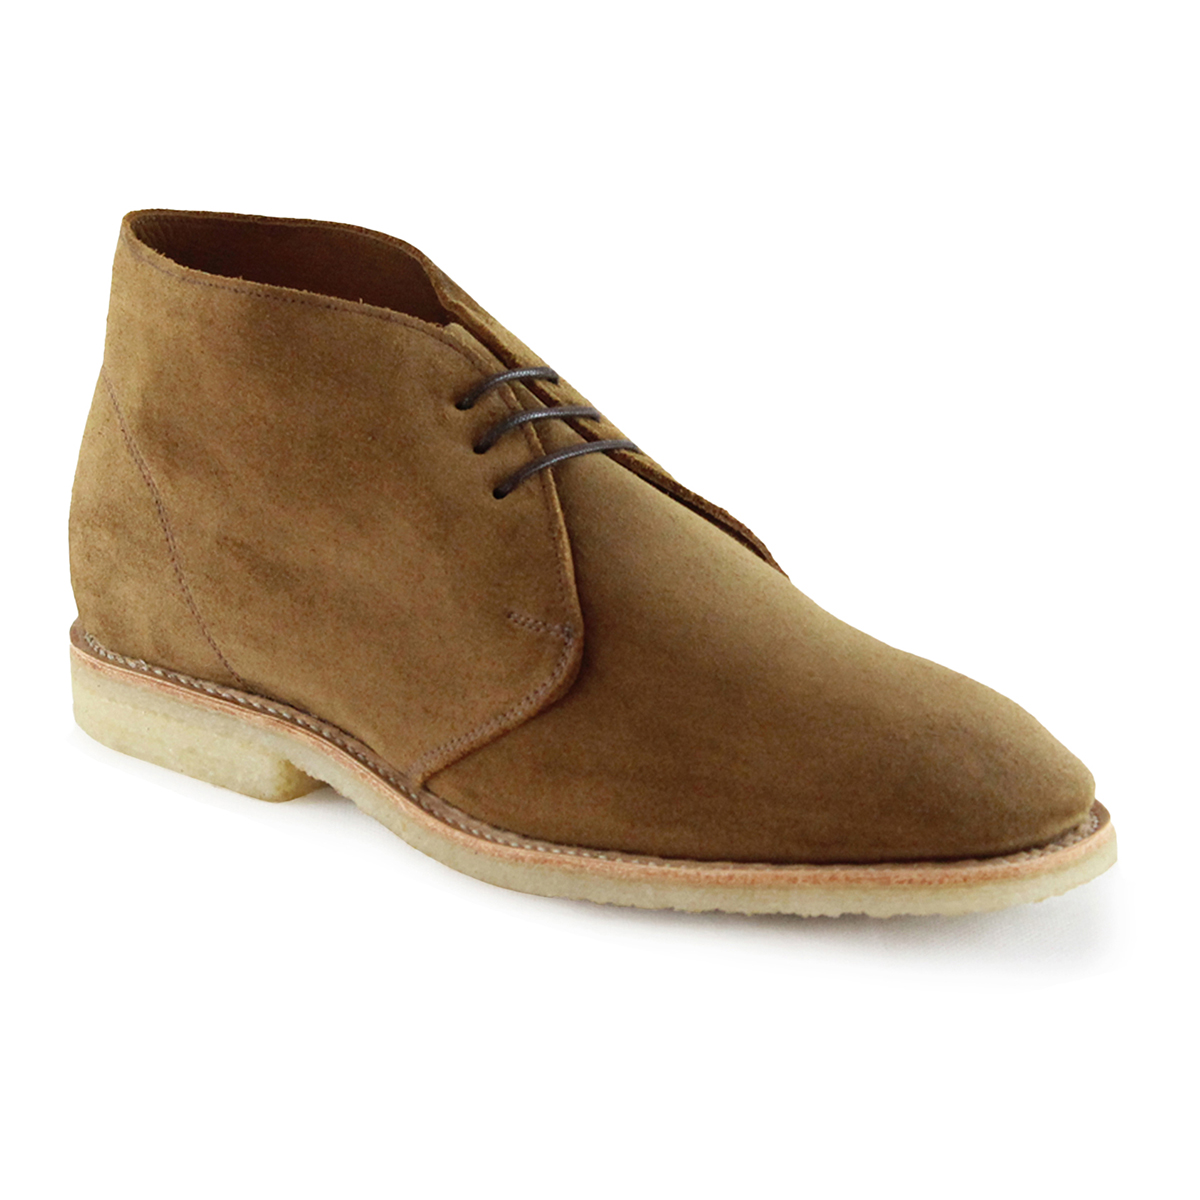 Tobacco Suede Unlined Marvin Chukka Boot